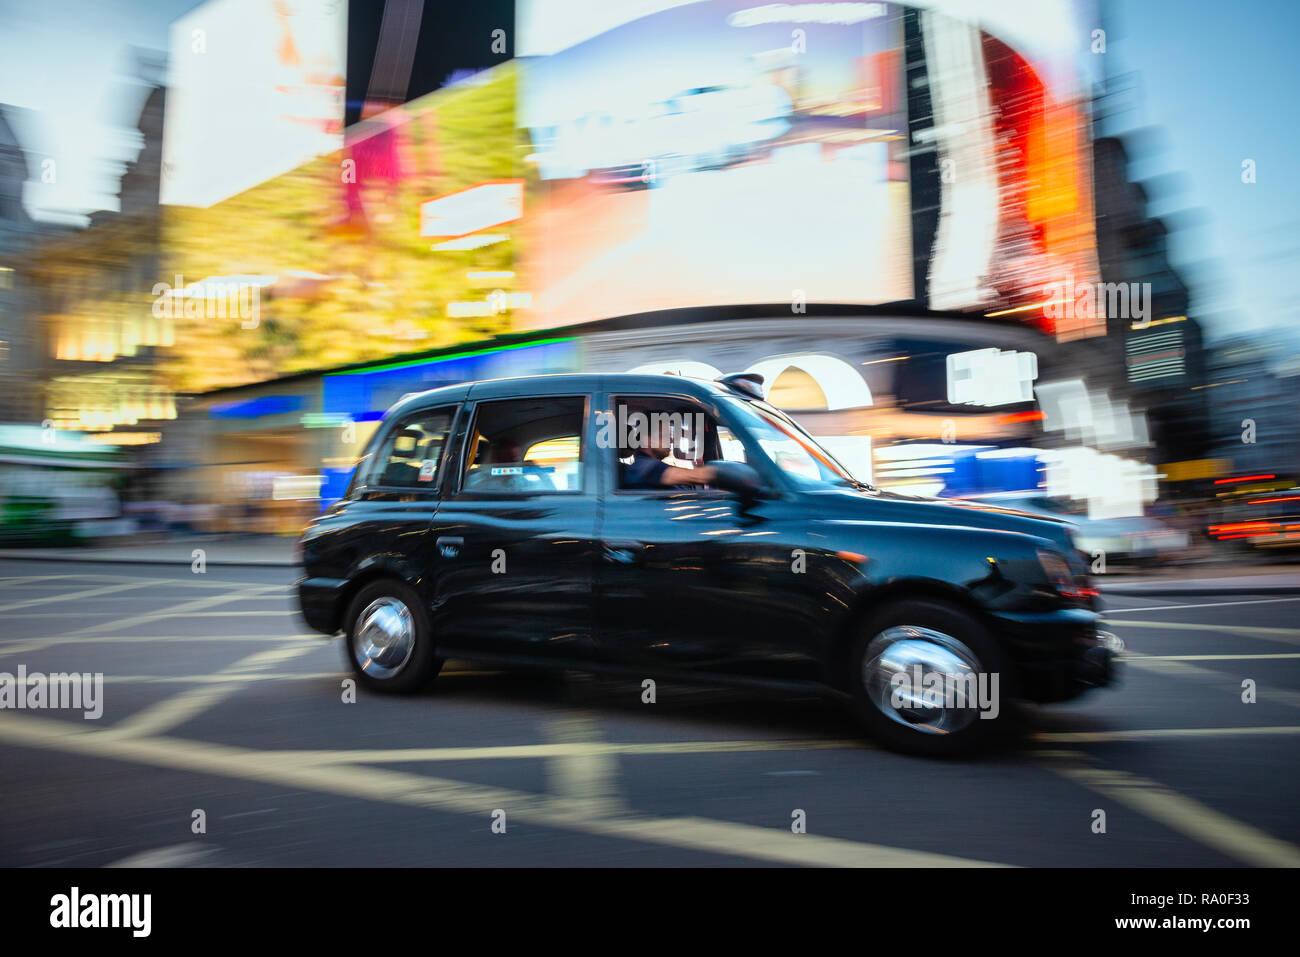 London black cab in Picadilly Circus at night - Stock Image